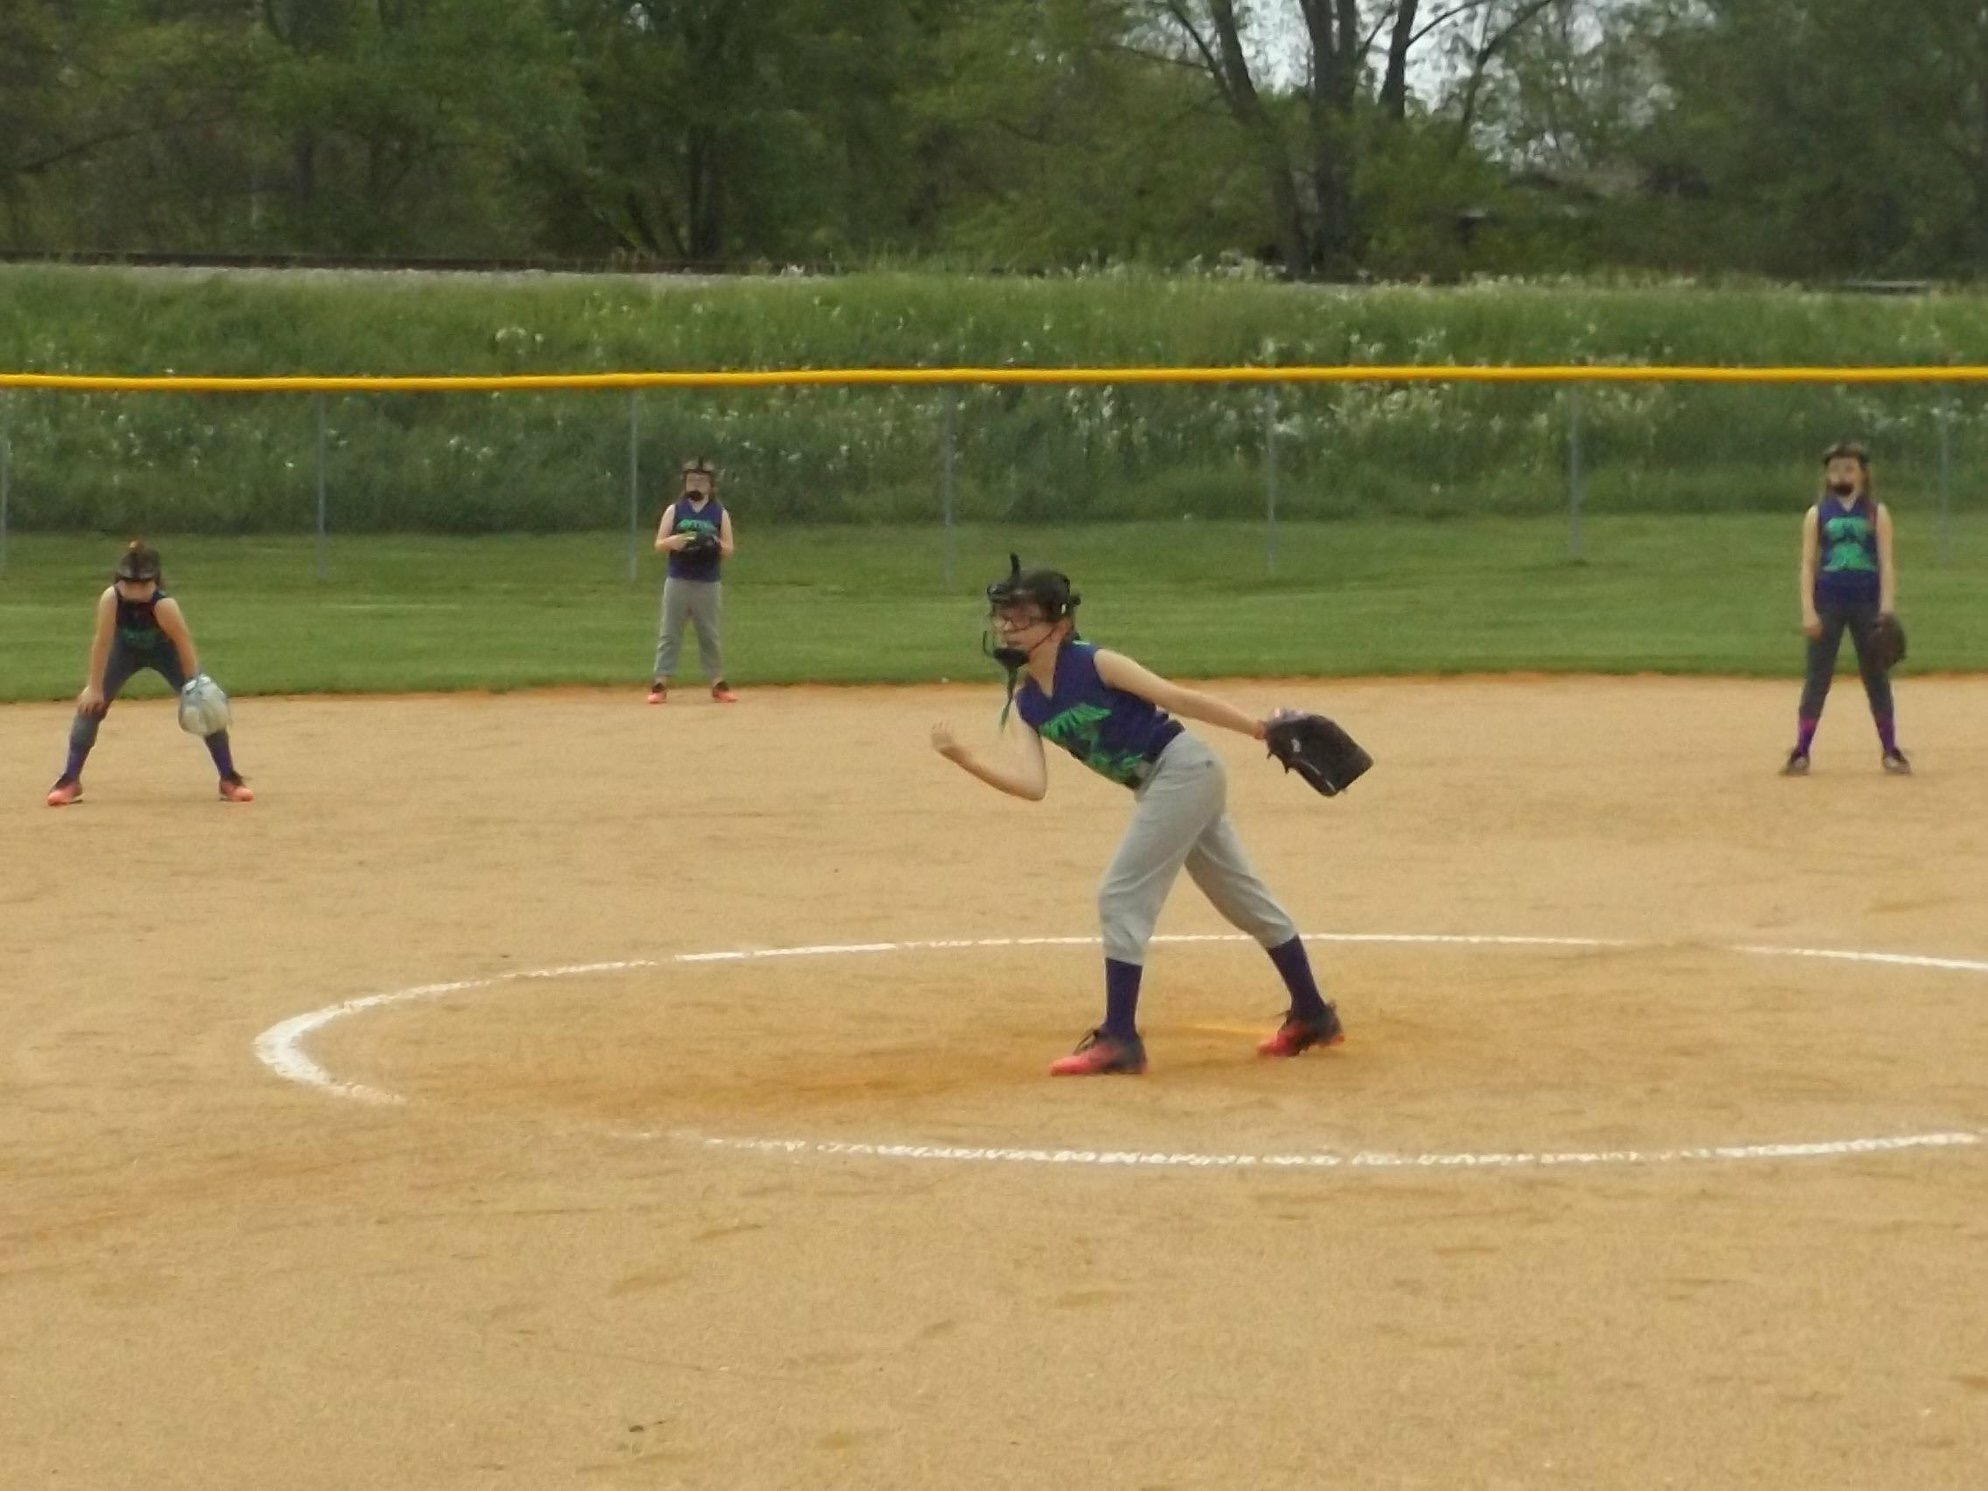 young player pitching softball ball